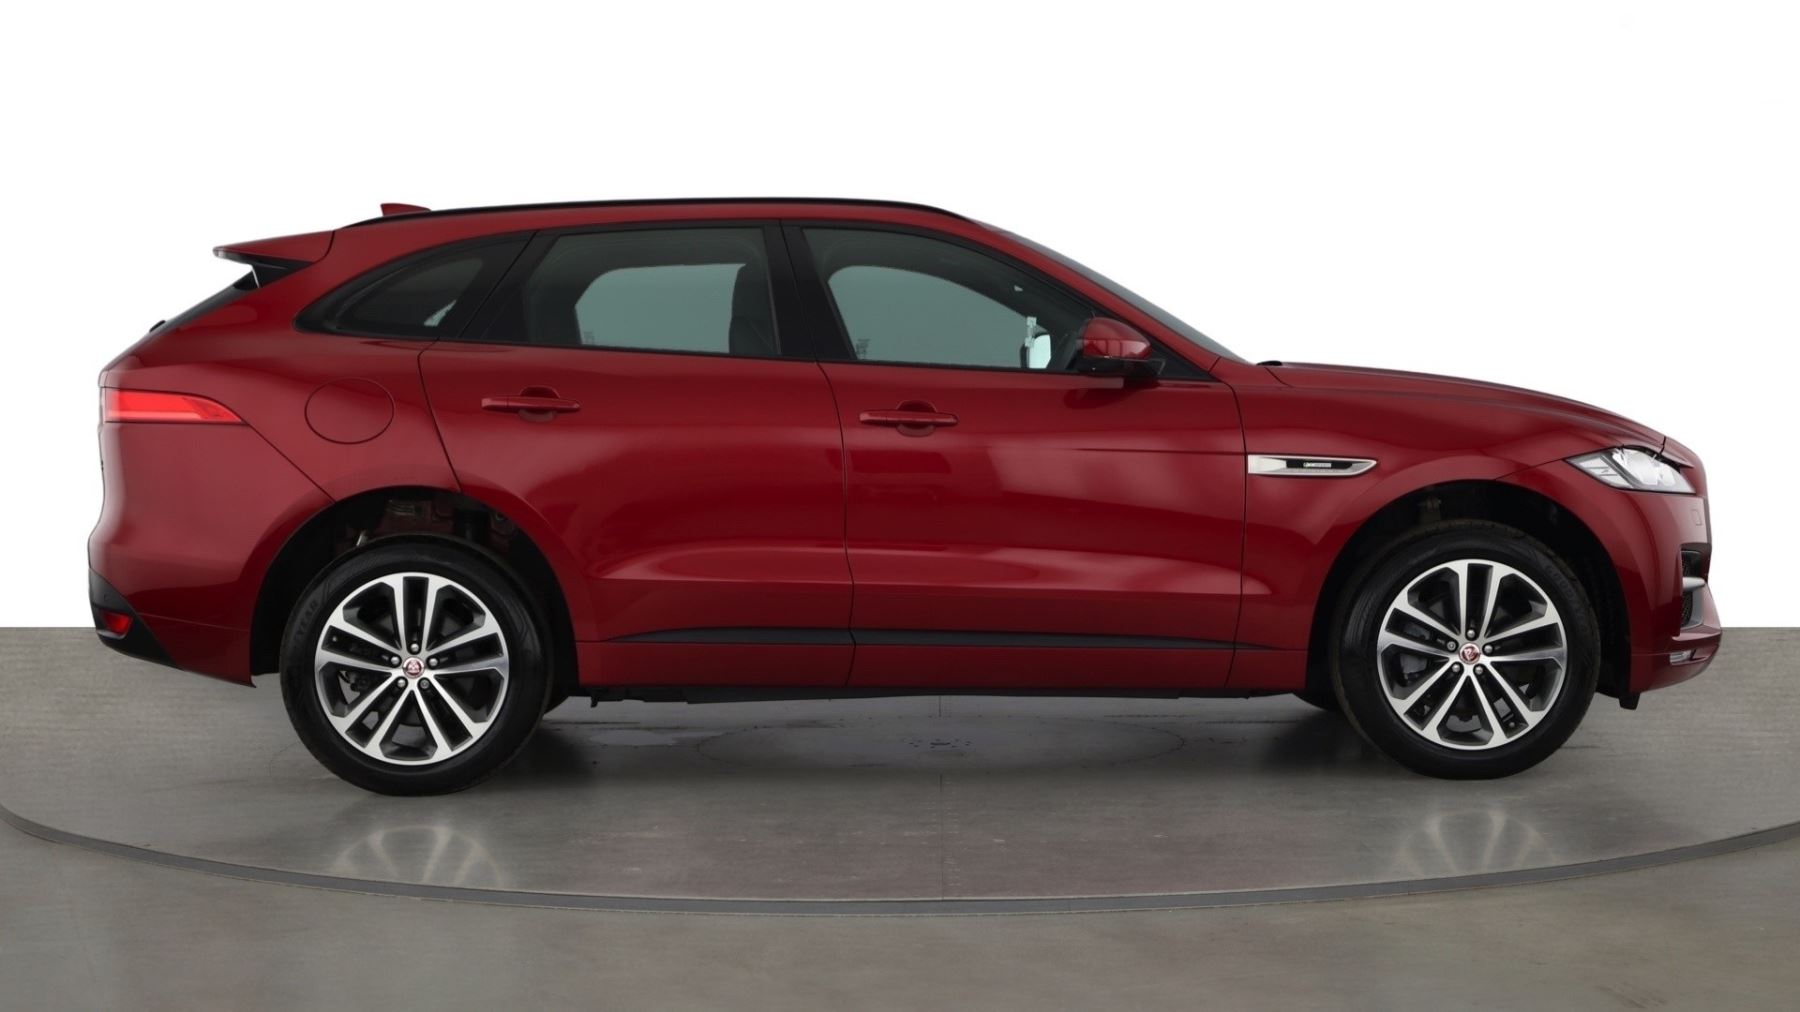 Jaguar F-PACE 2.0d R-Sport AWD - Sliding Panoramic Roof - Rear View Camera image 8